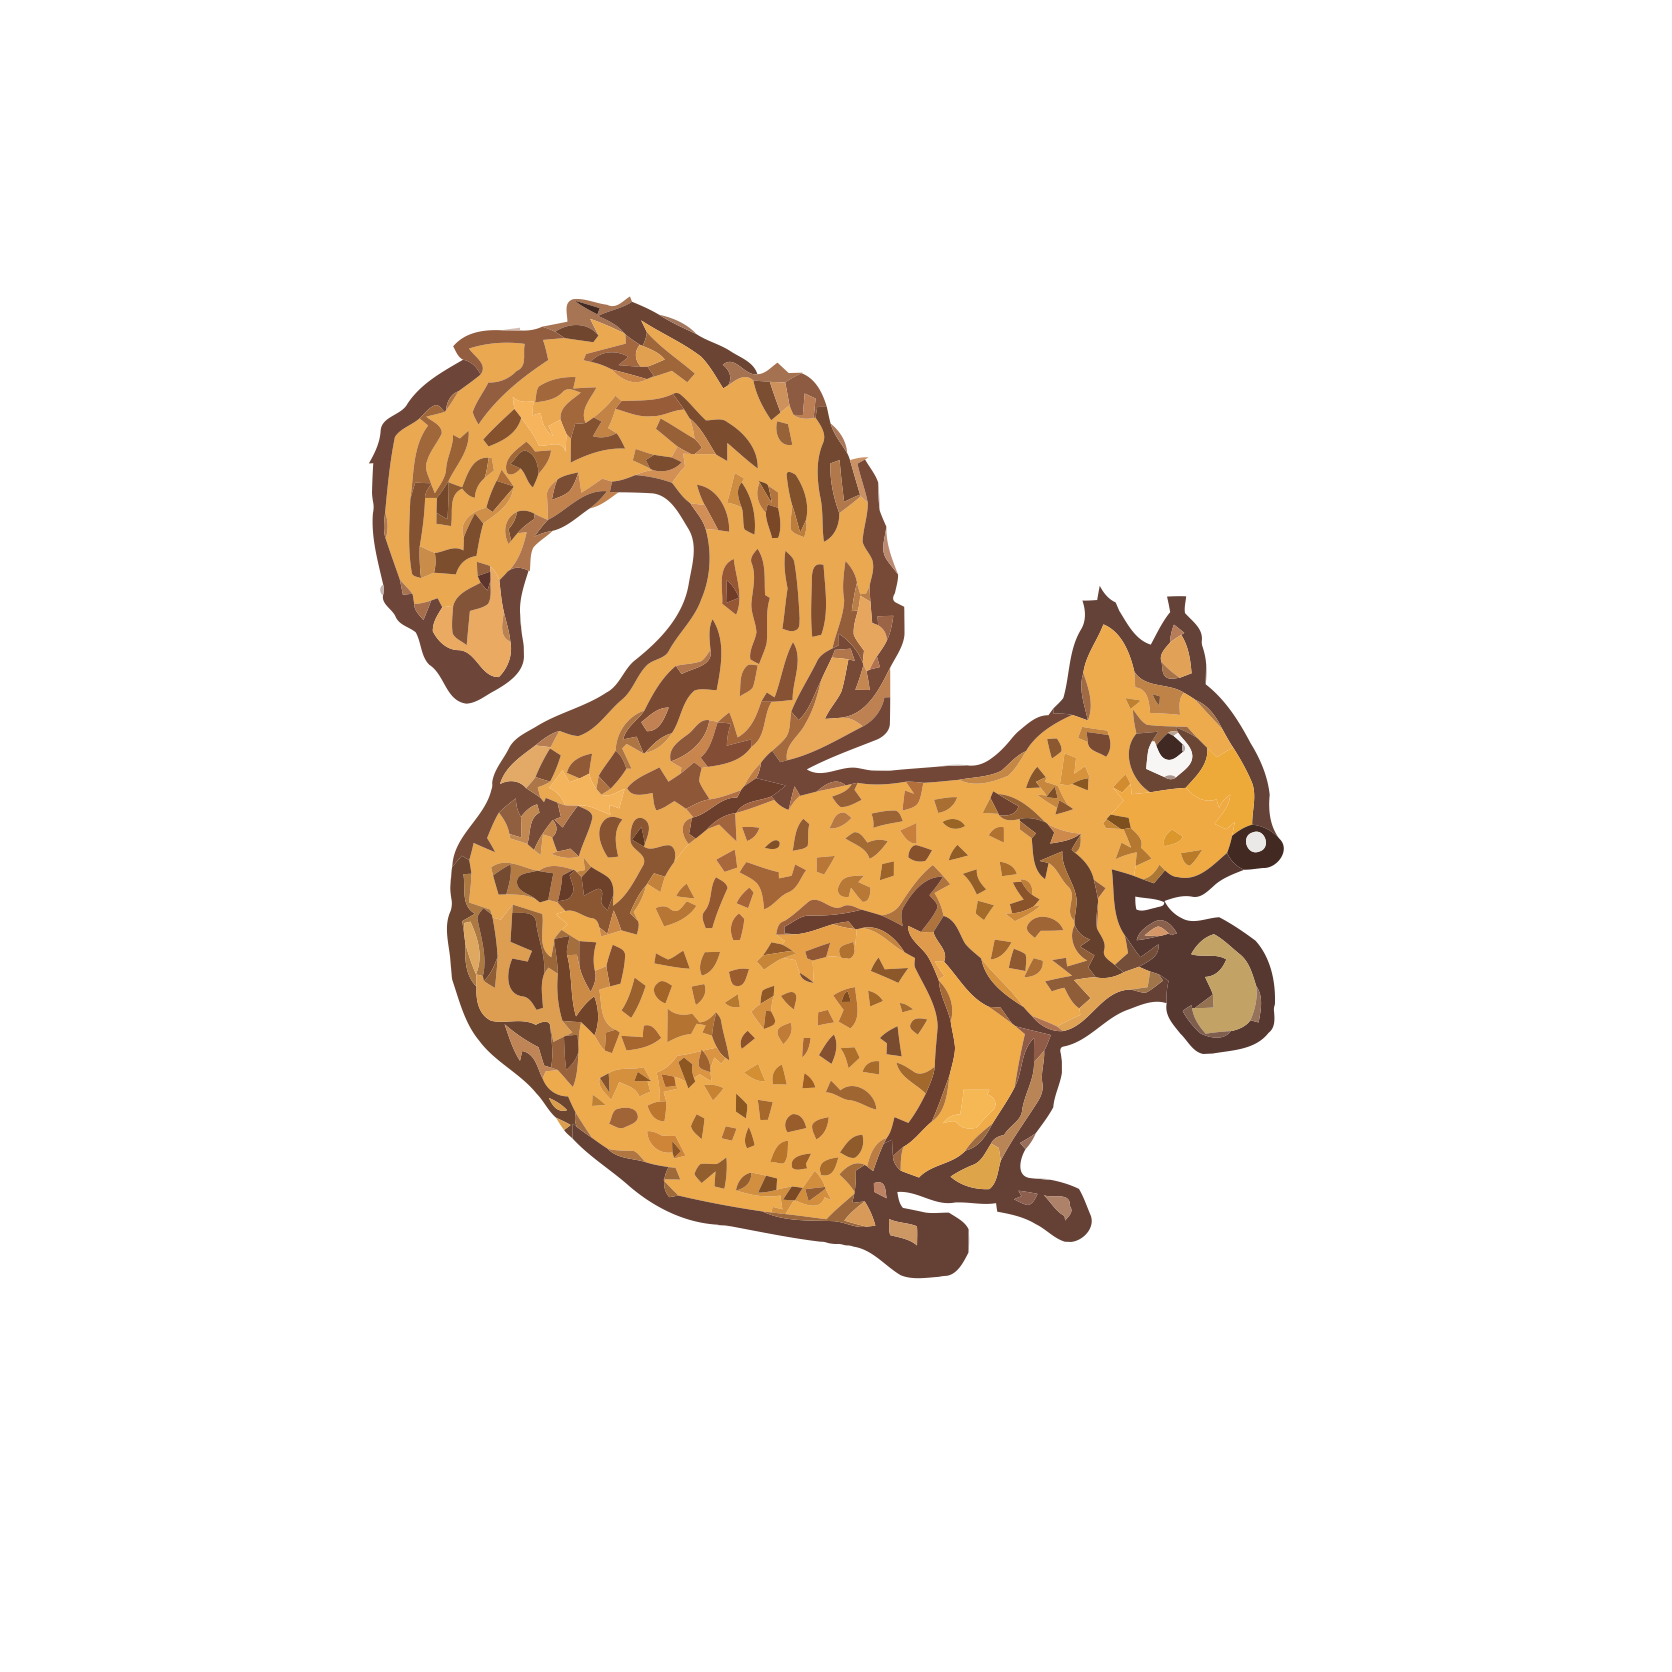 Polish - Red squirrel - art, draw, drawings, vectorized, vector, image, artwork, paints